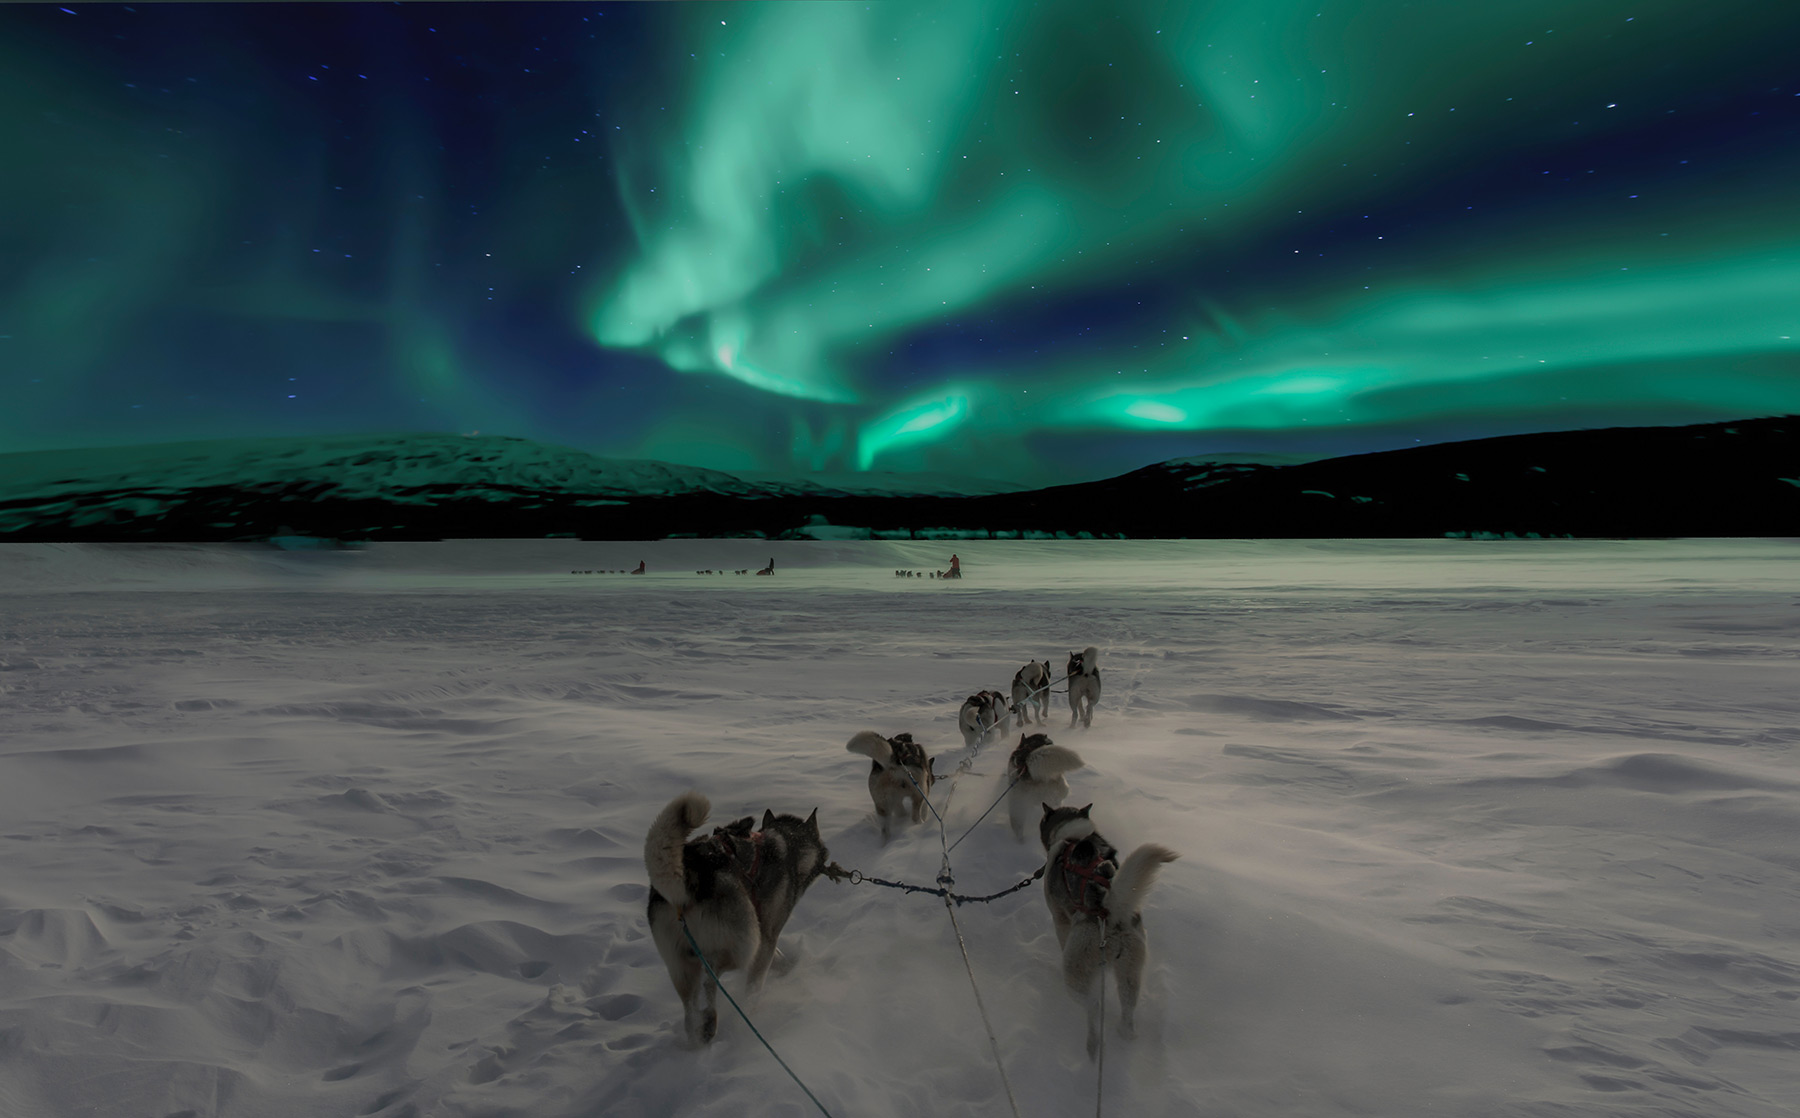 dogs pulling sleigh during night aurora borealis